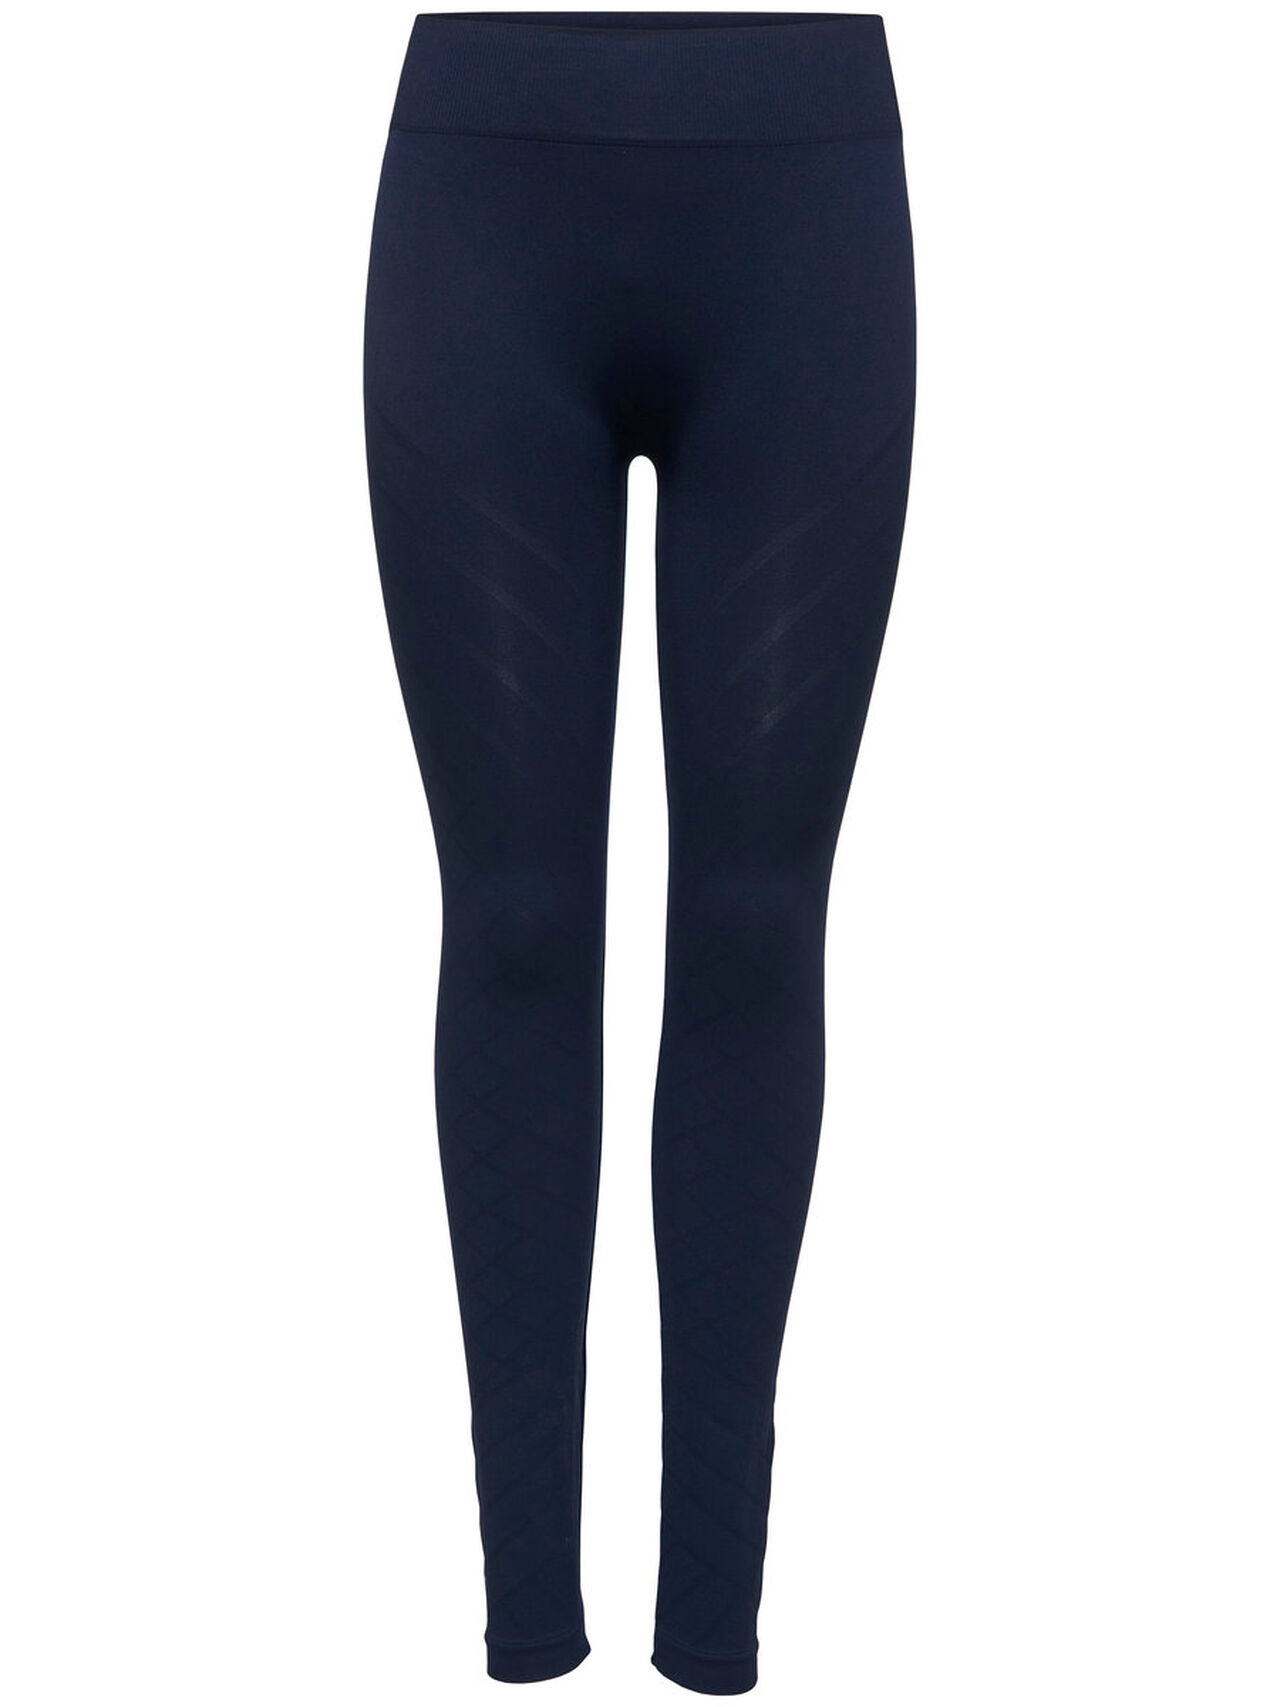 ONLY Seamless Training Tights Women Blue